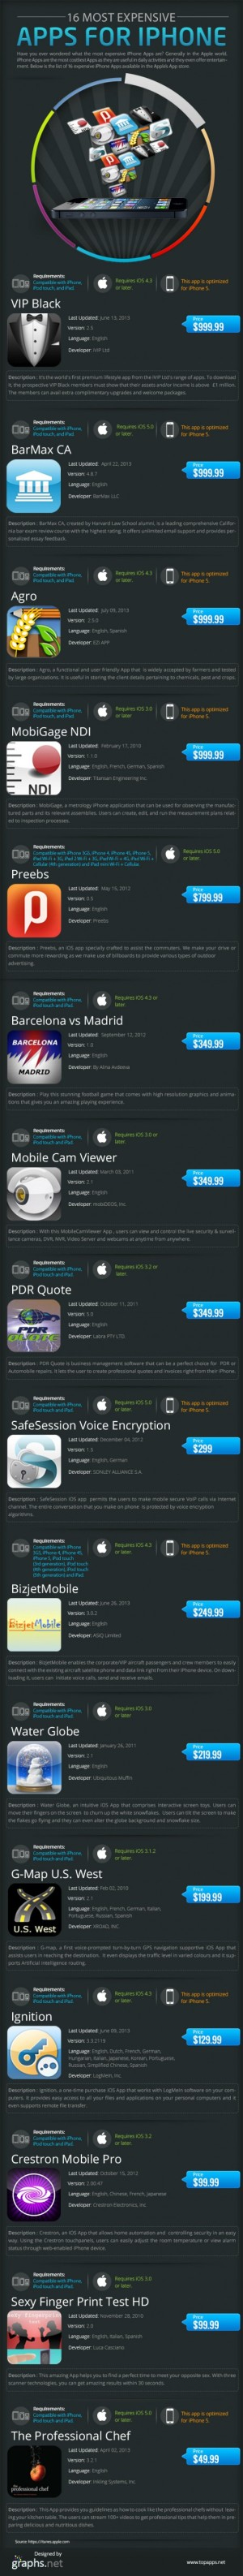 Most-expensive-iPhone-applications-infographic-540x5714